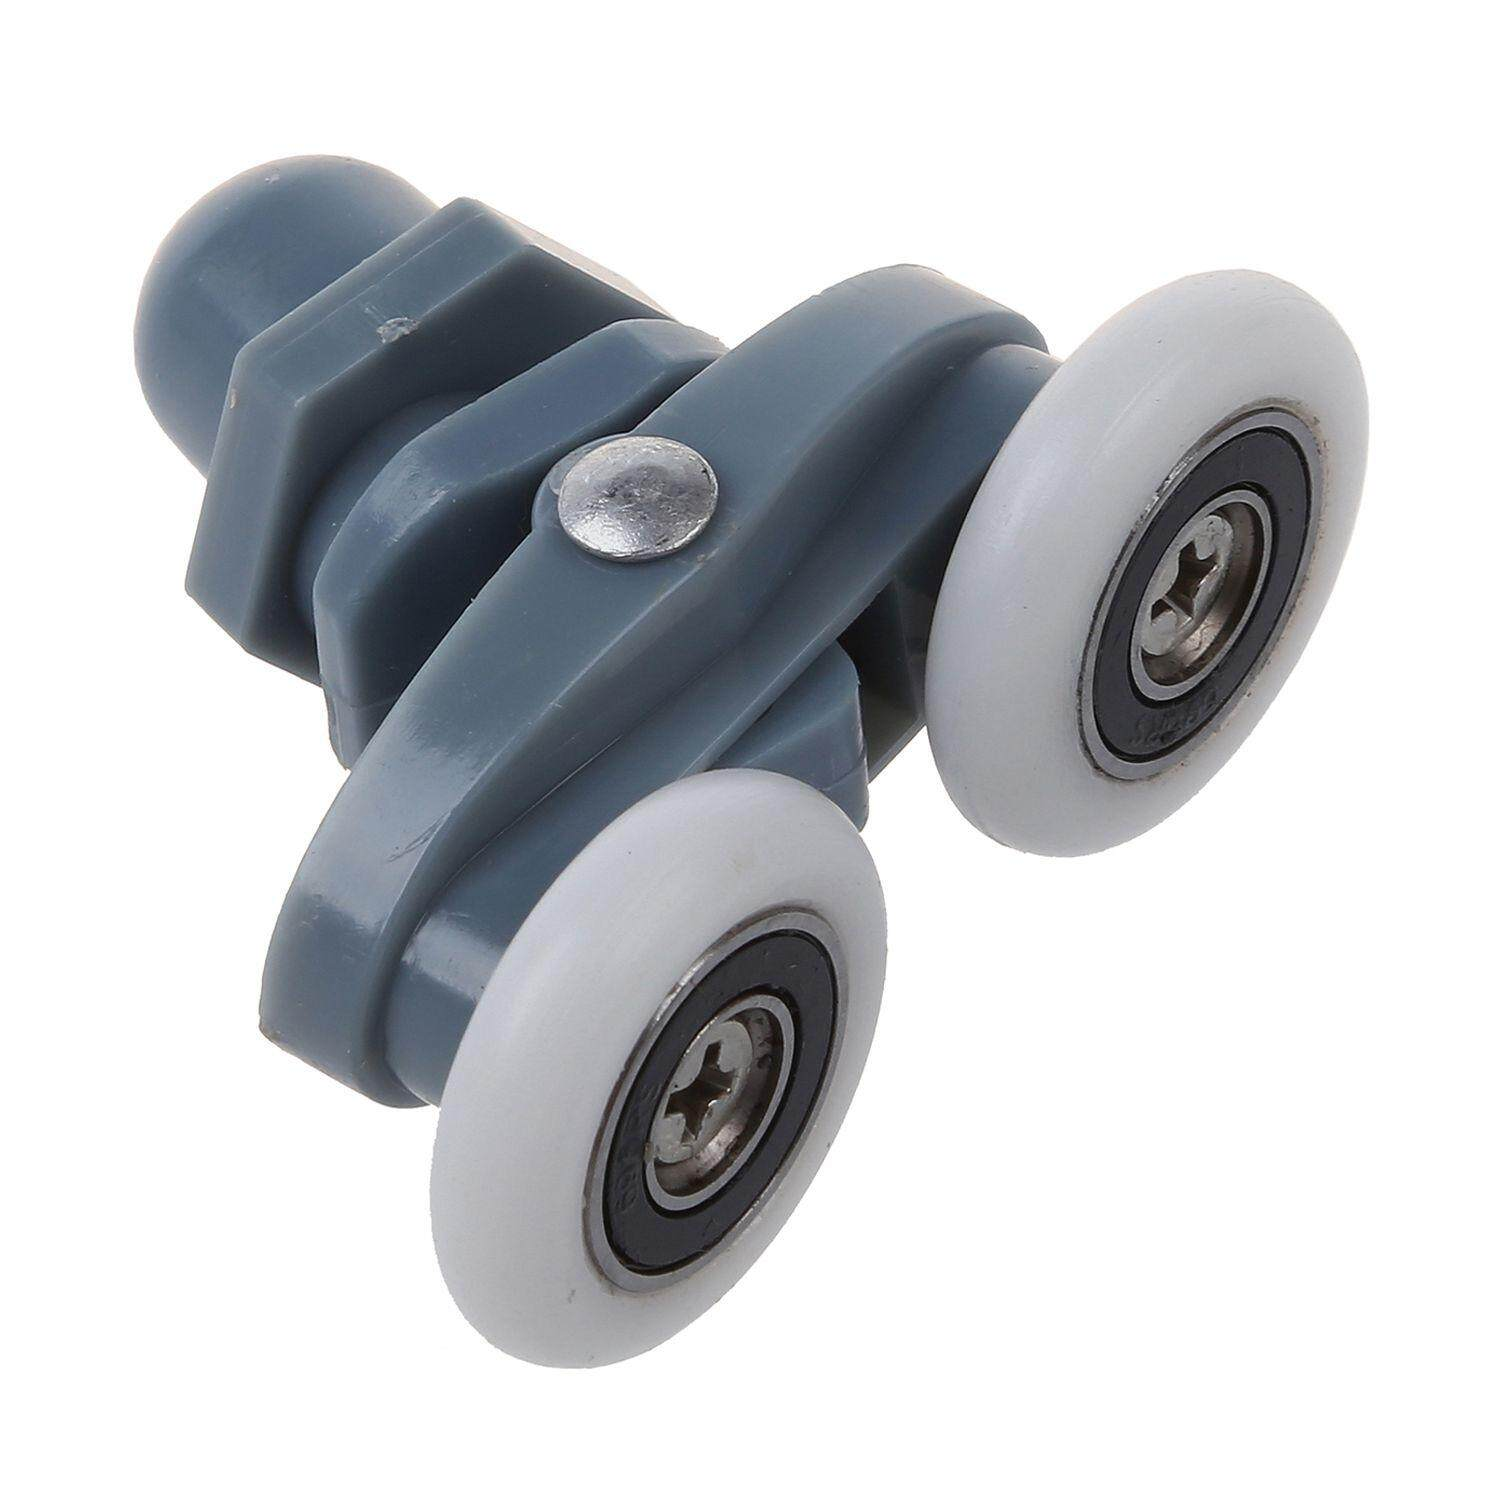 4x Twin Bottom Top Shower Door Rollers Pulleys Wheels Runner Slider 20mm or 23mm